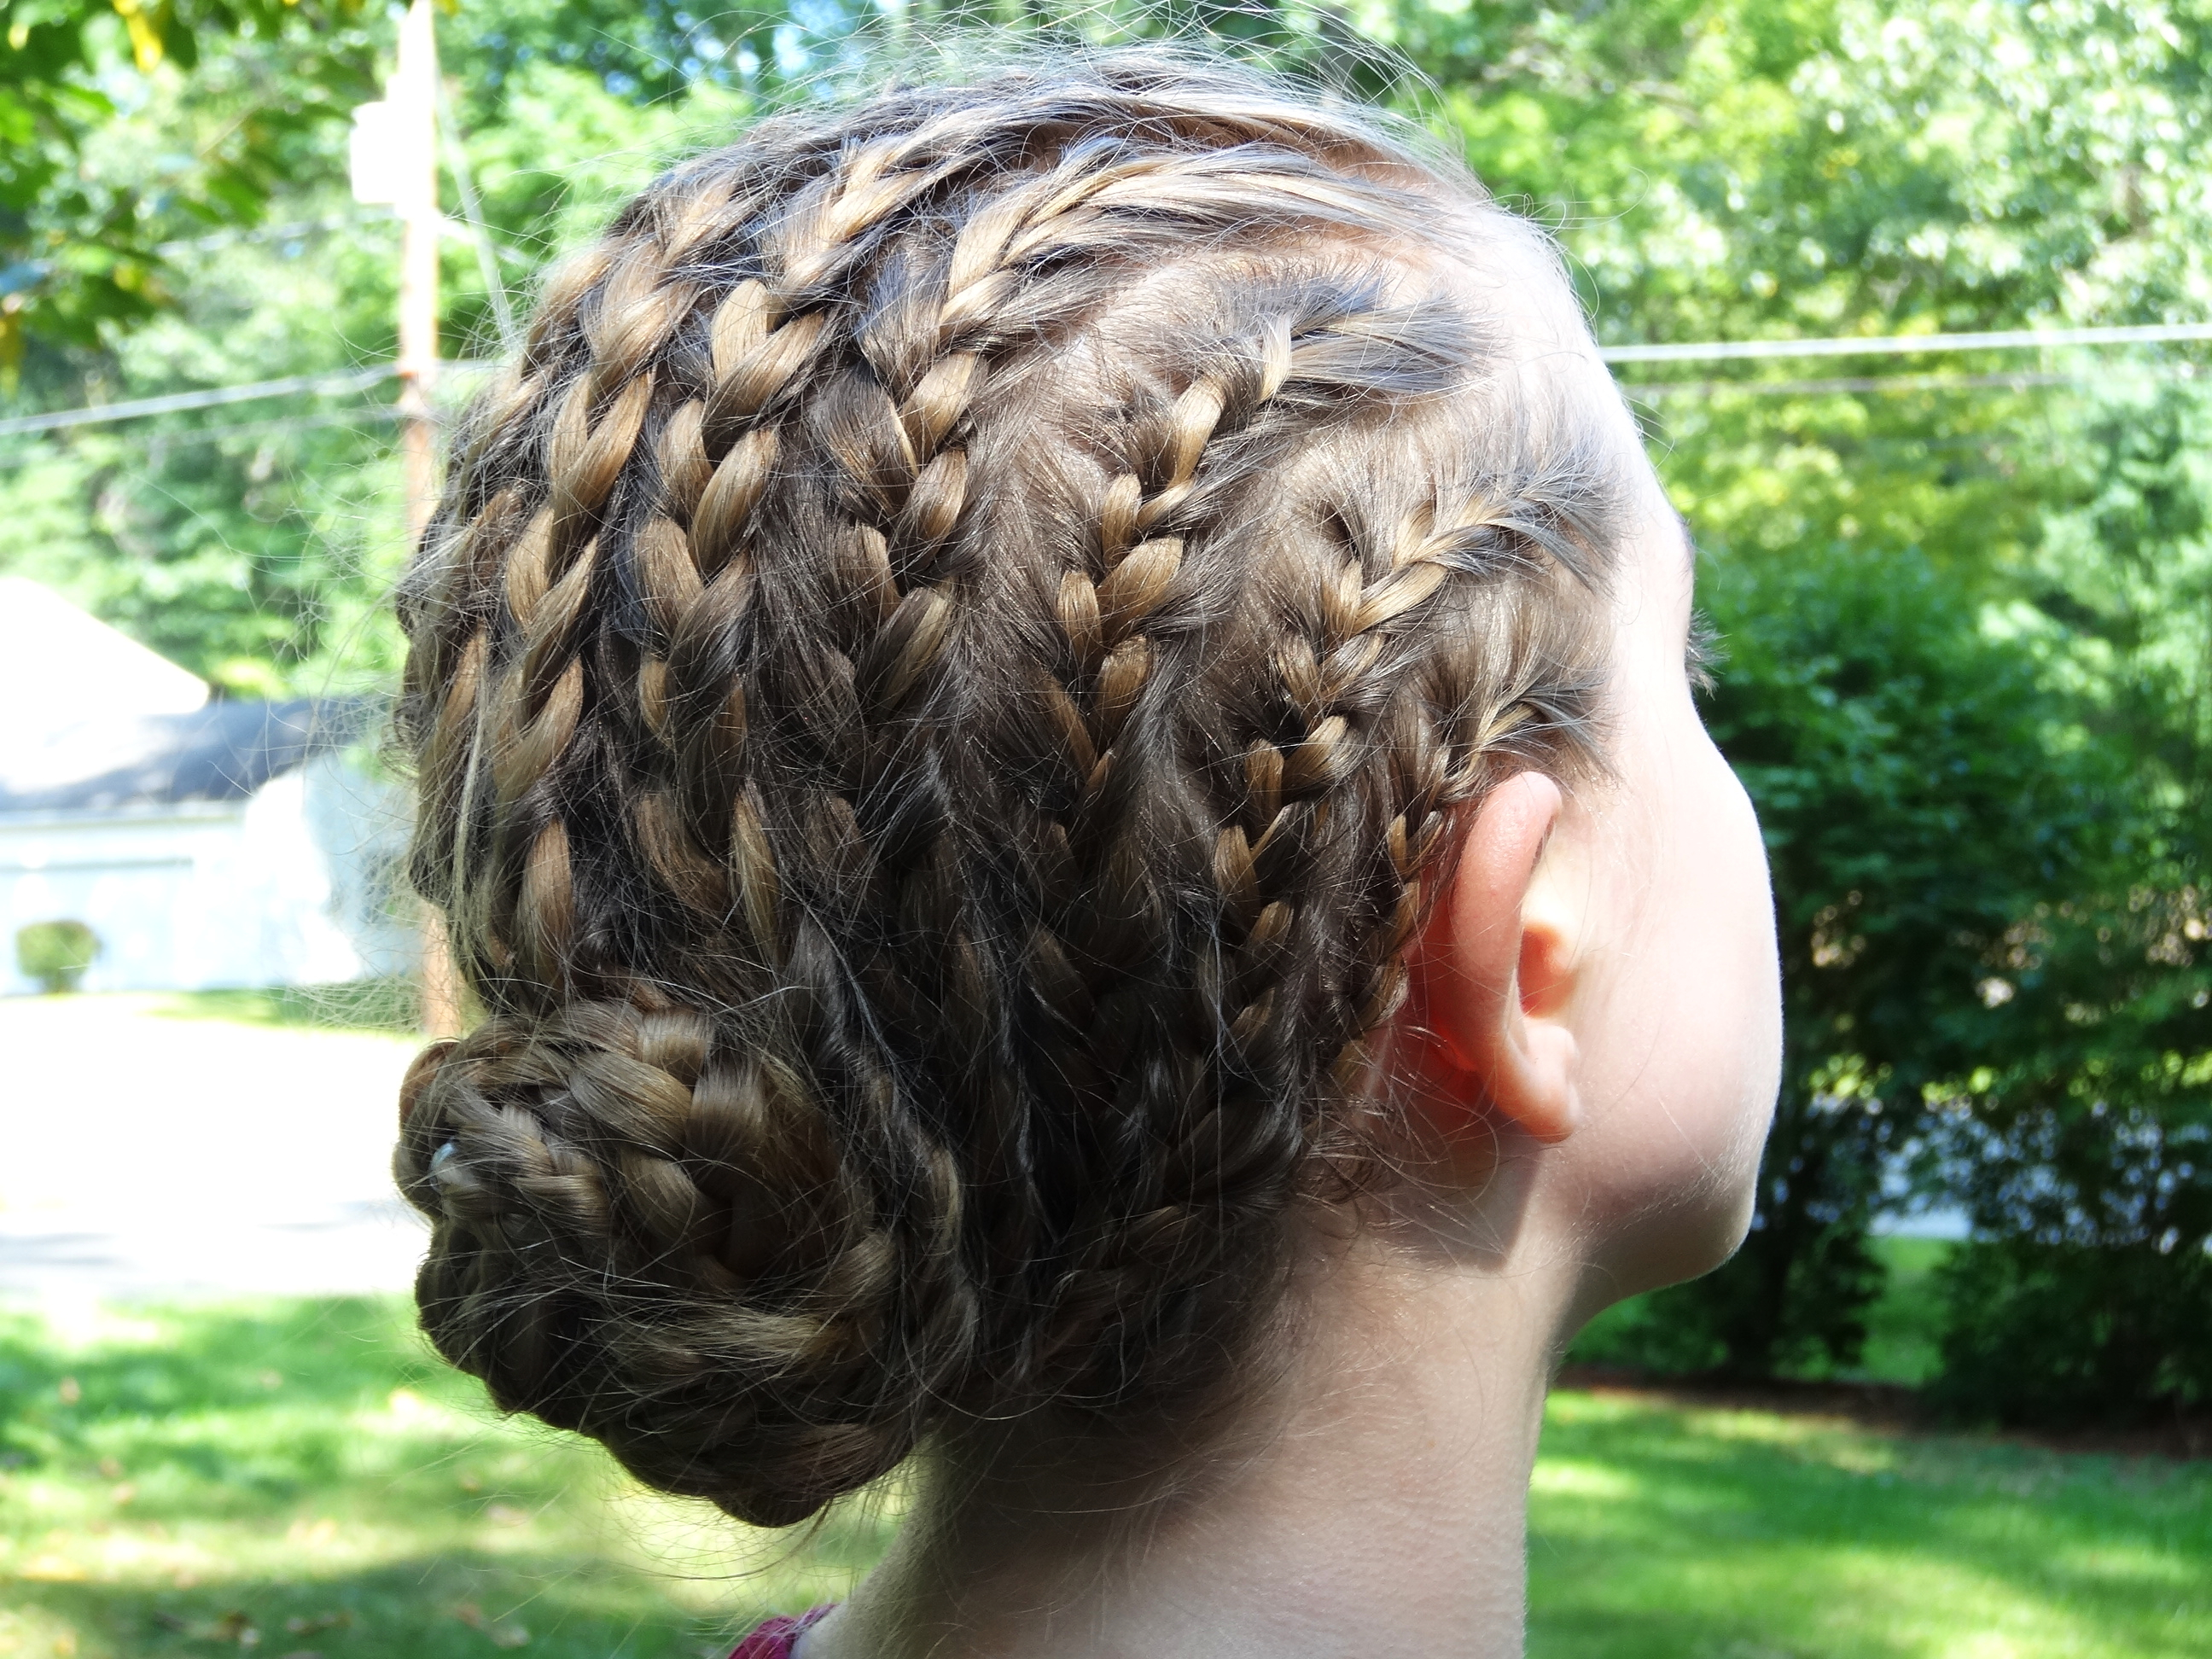 Braid (hairstyle) - Wikipedia